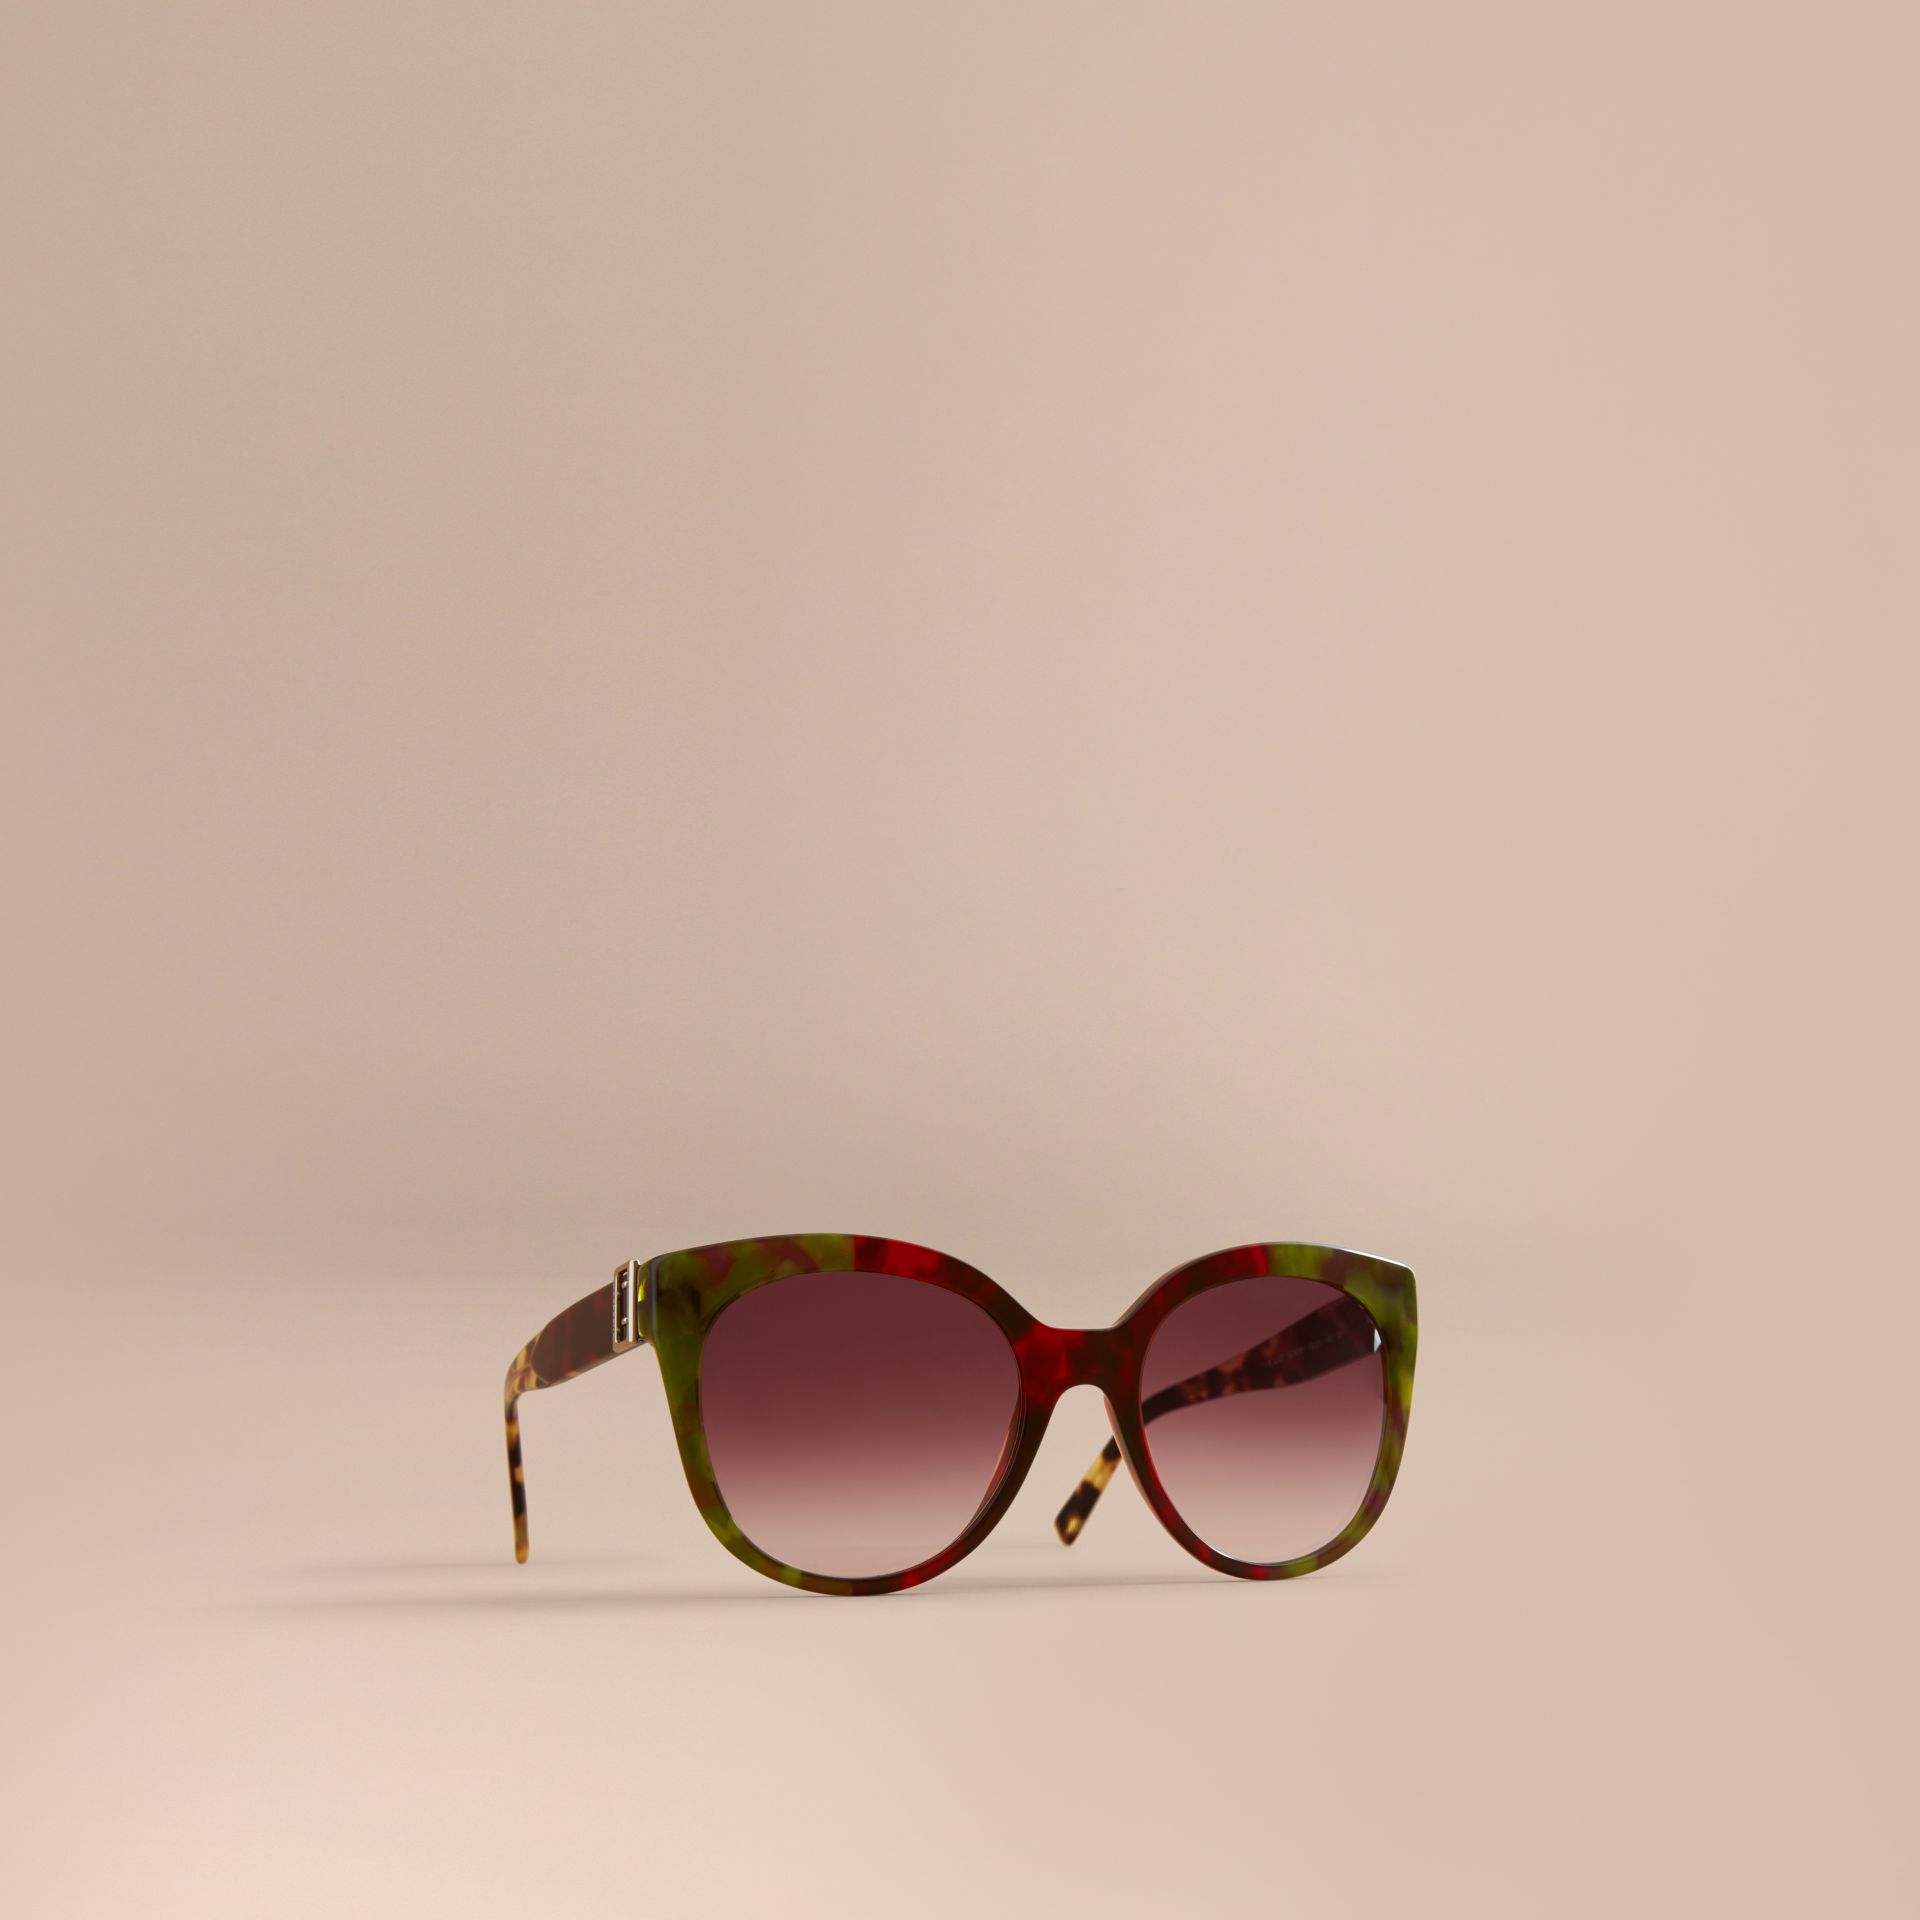 dbe3ca28d86d BURBERRY. Buckle Detail Cat-Eye Frame Sunglasses